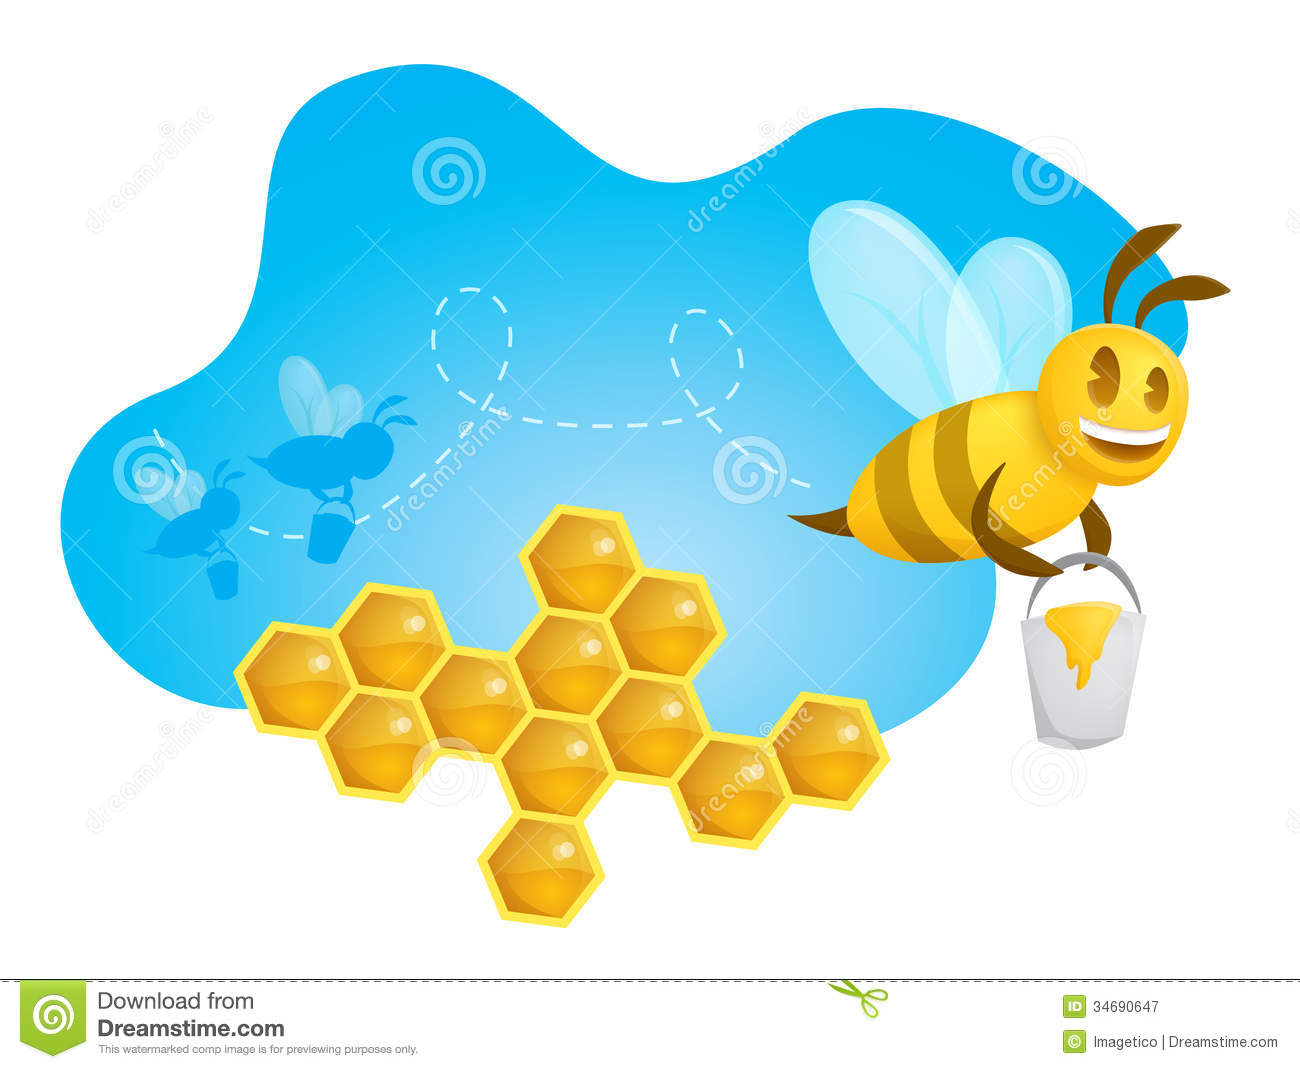 Displaying 20> Images For - Bee Silhouette Clip Art...